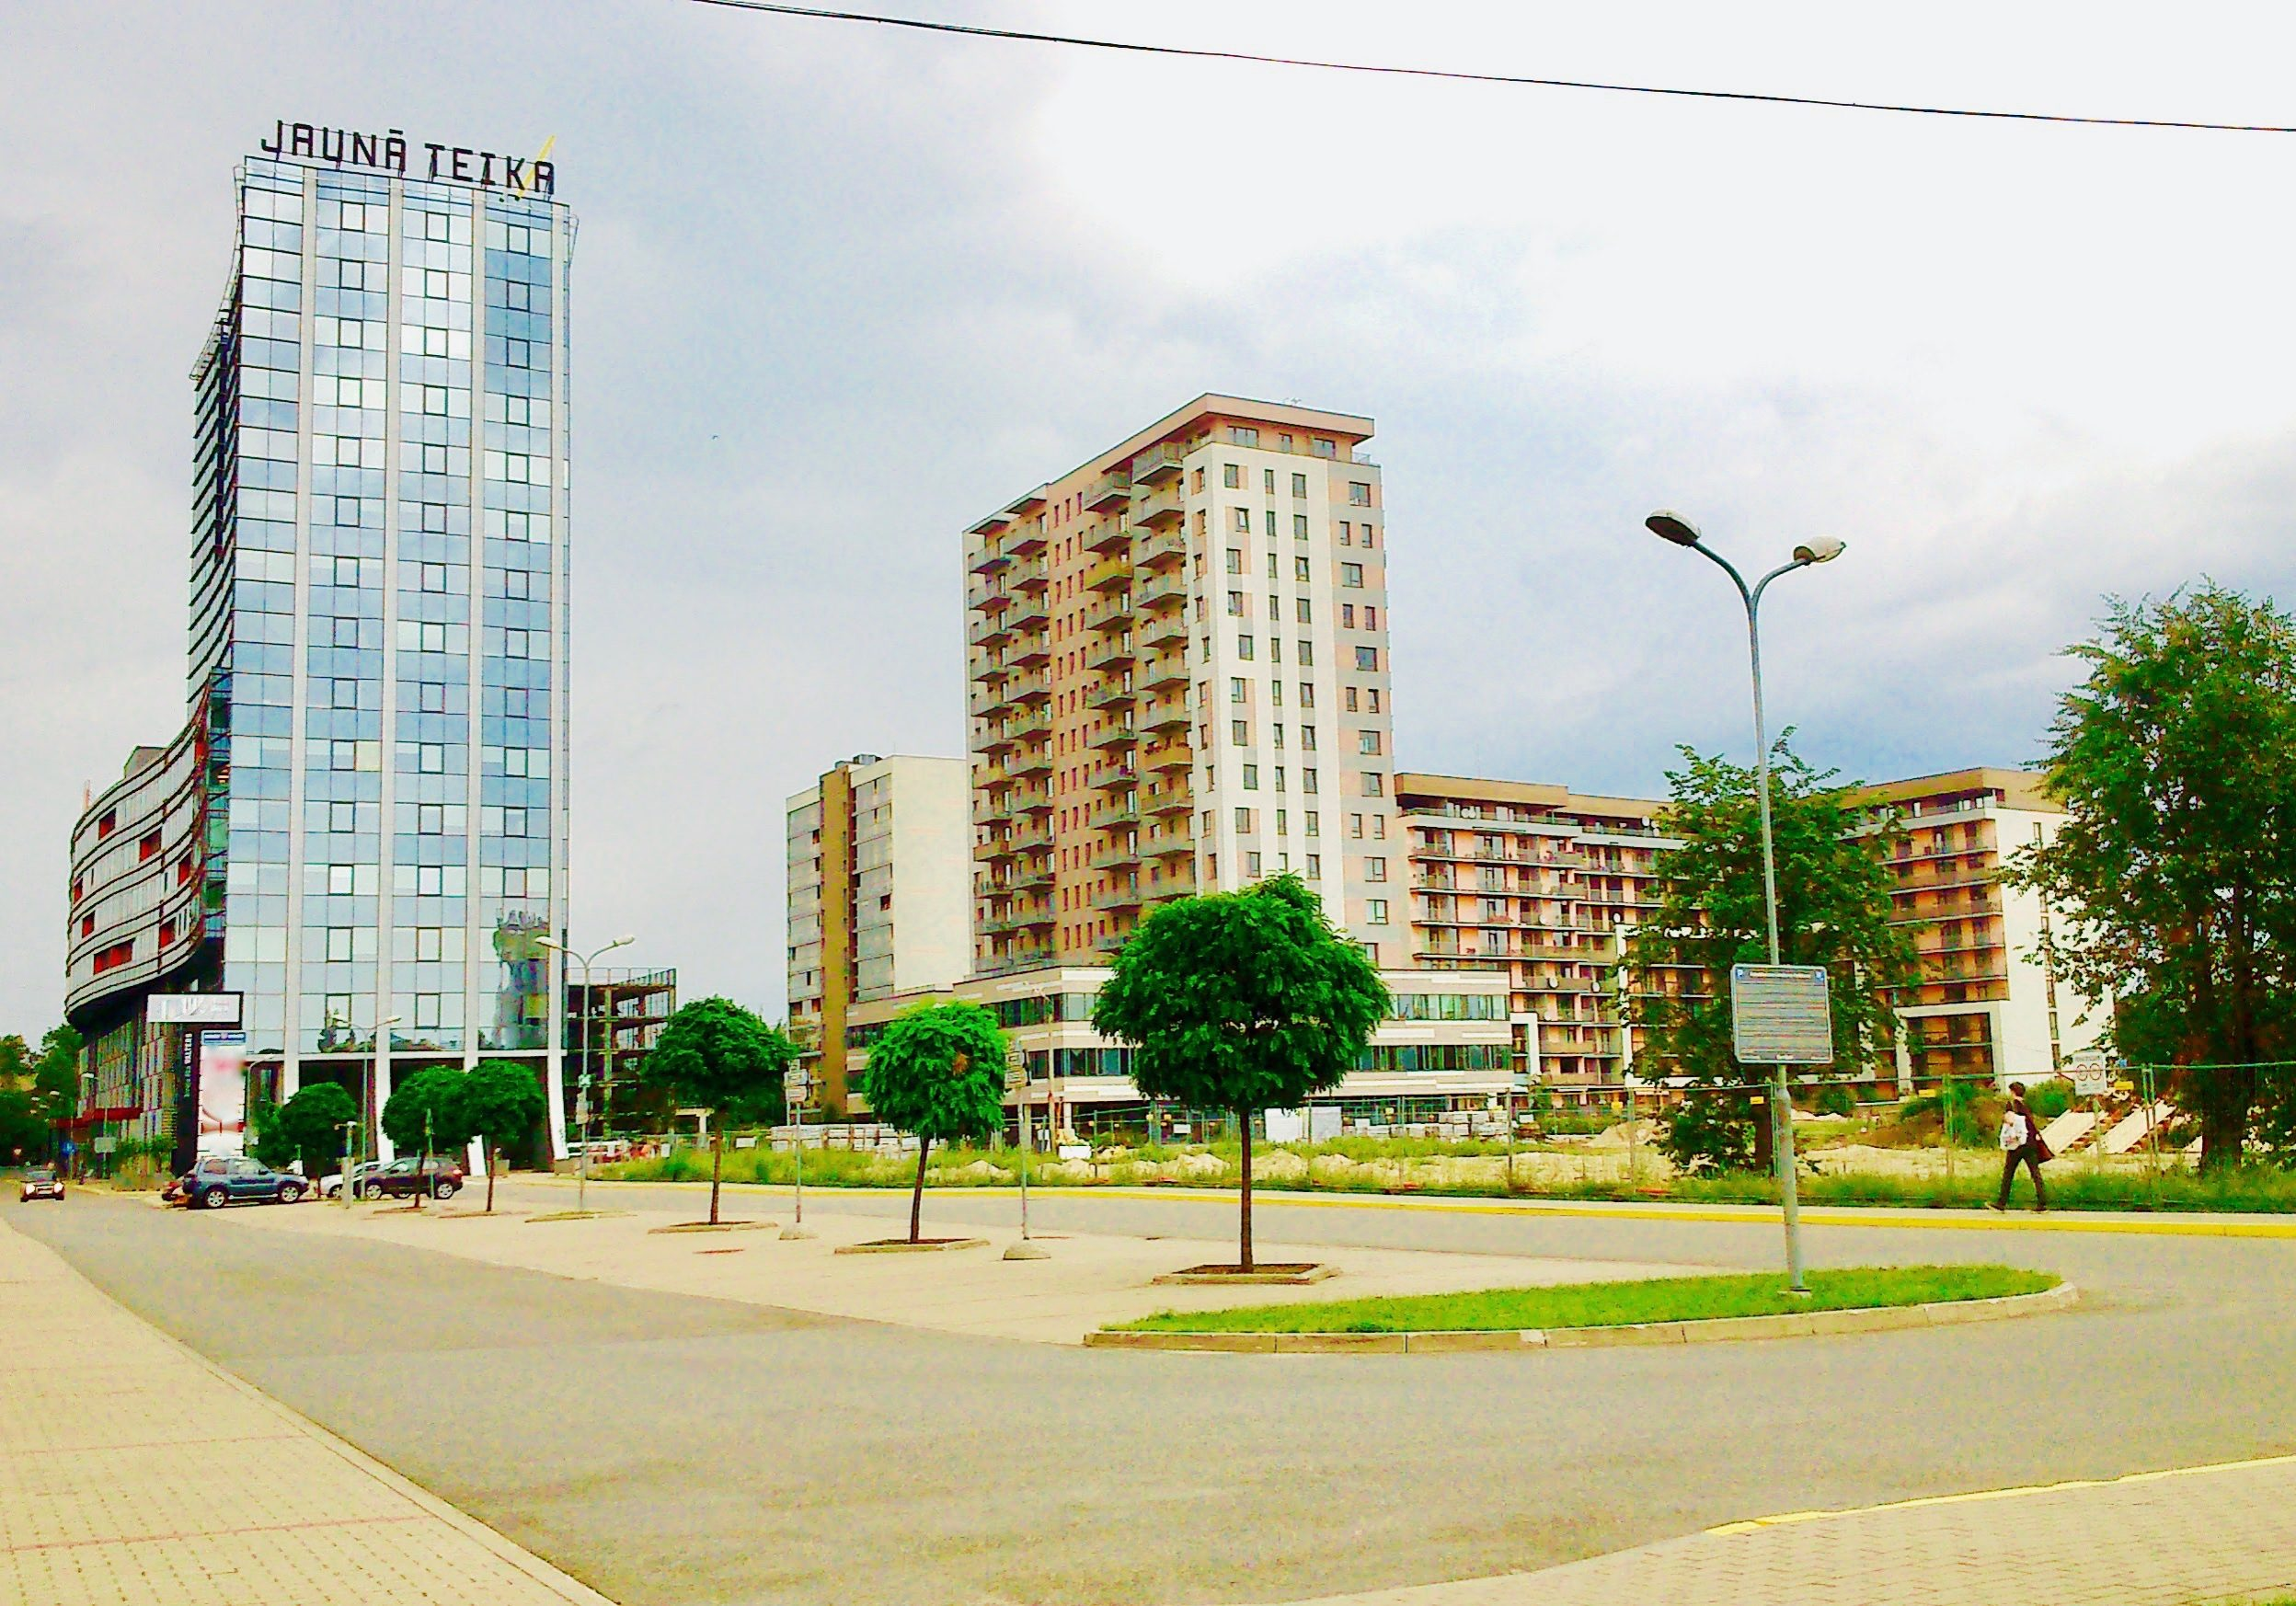 Jaunā Teika is a new construction project